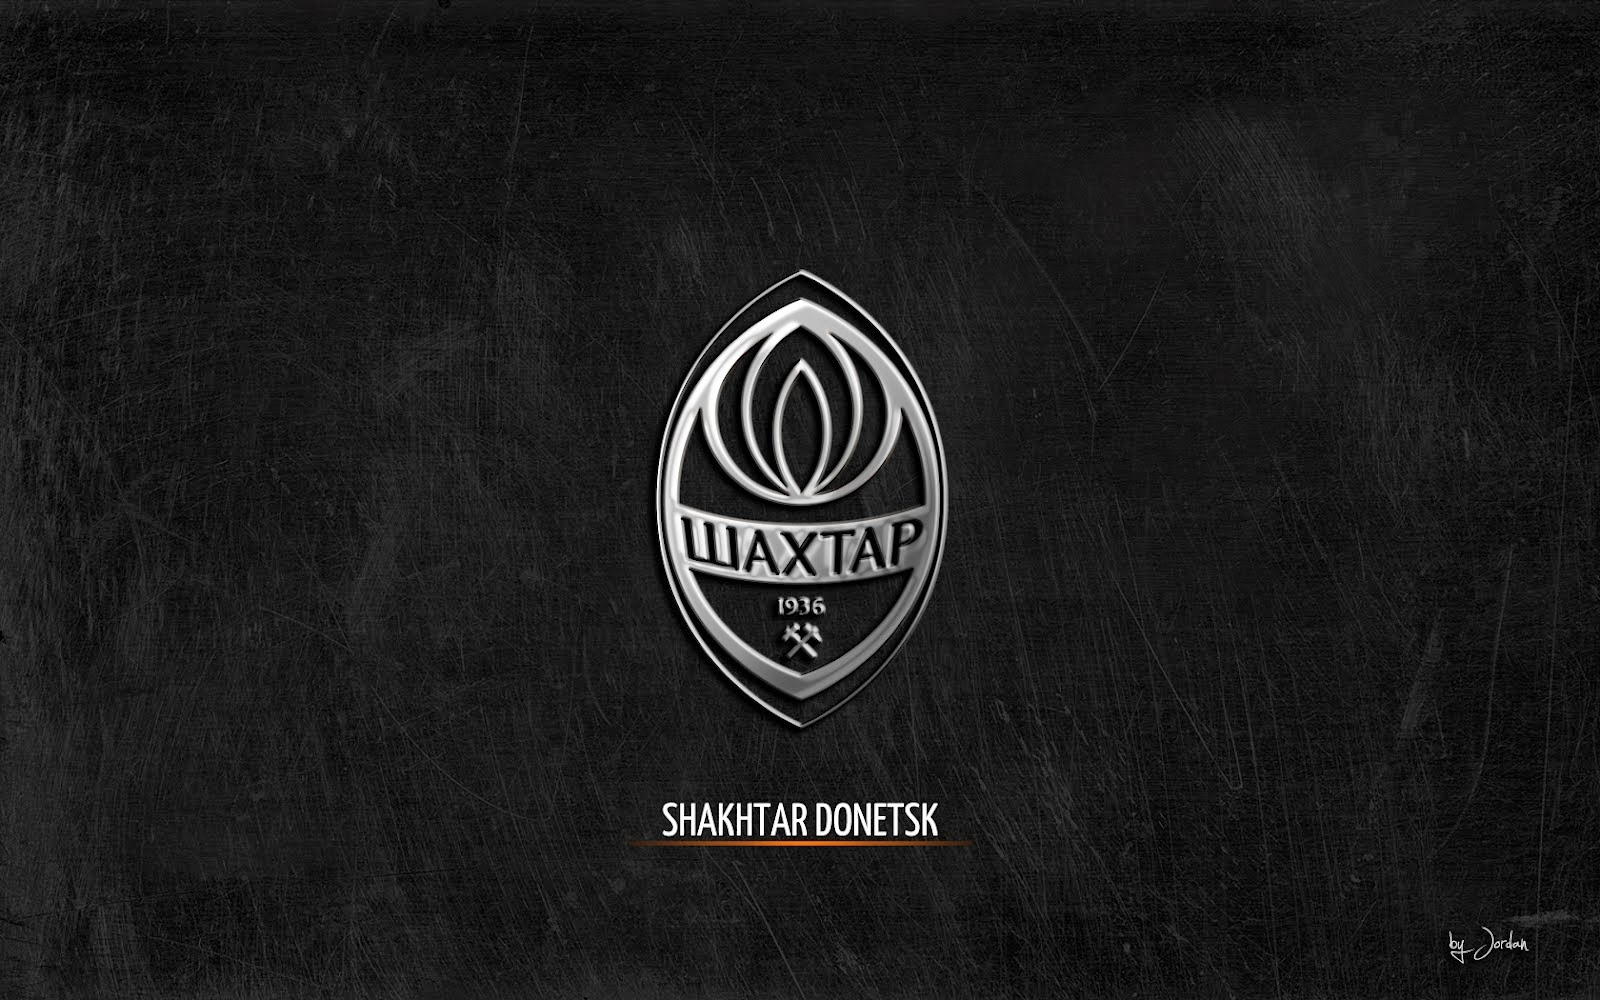 Download Shakhtar Donetsk Wallpapers In Hd For Desktop Or